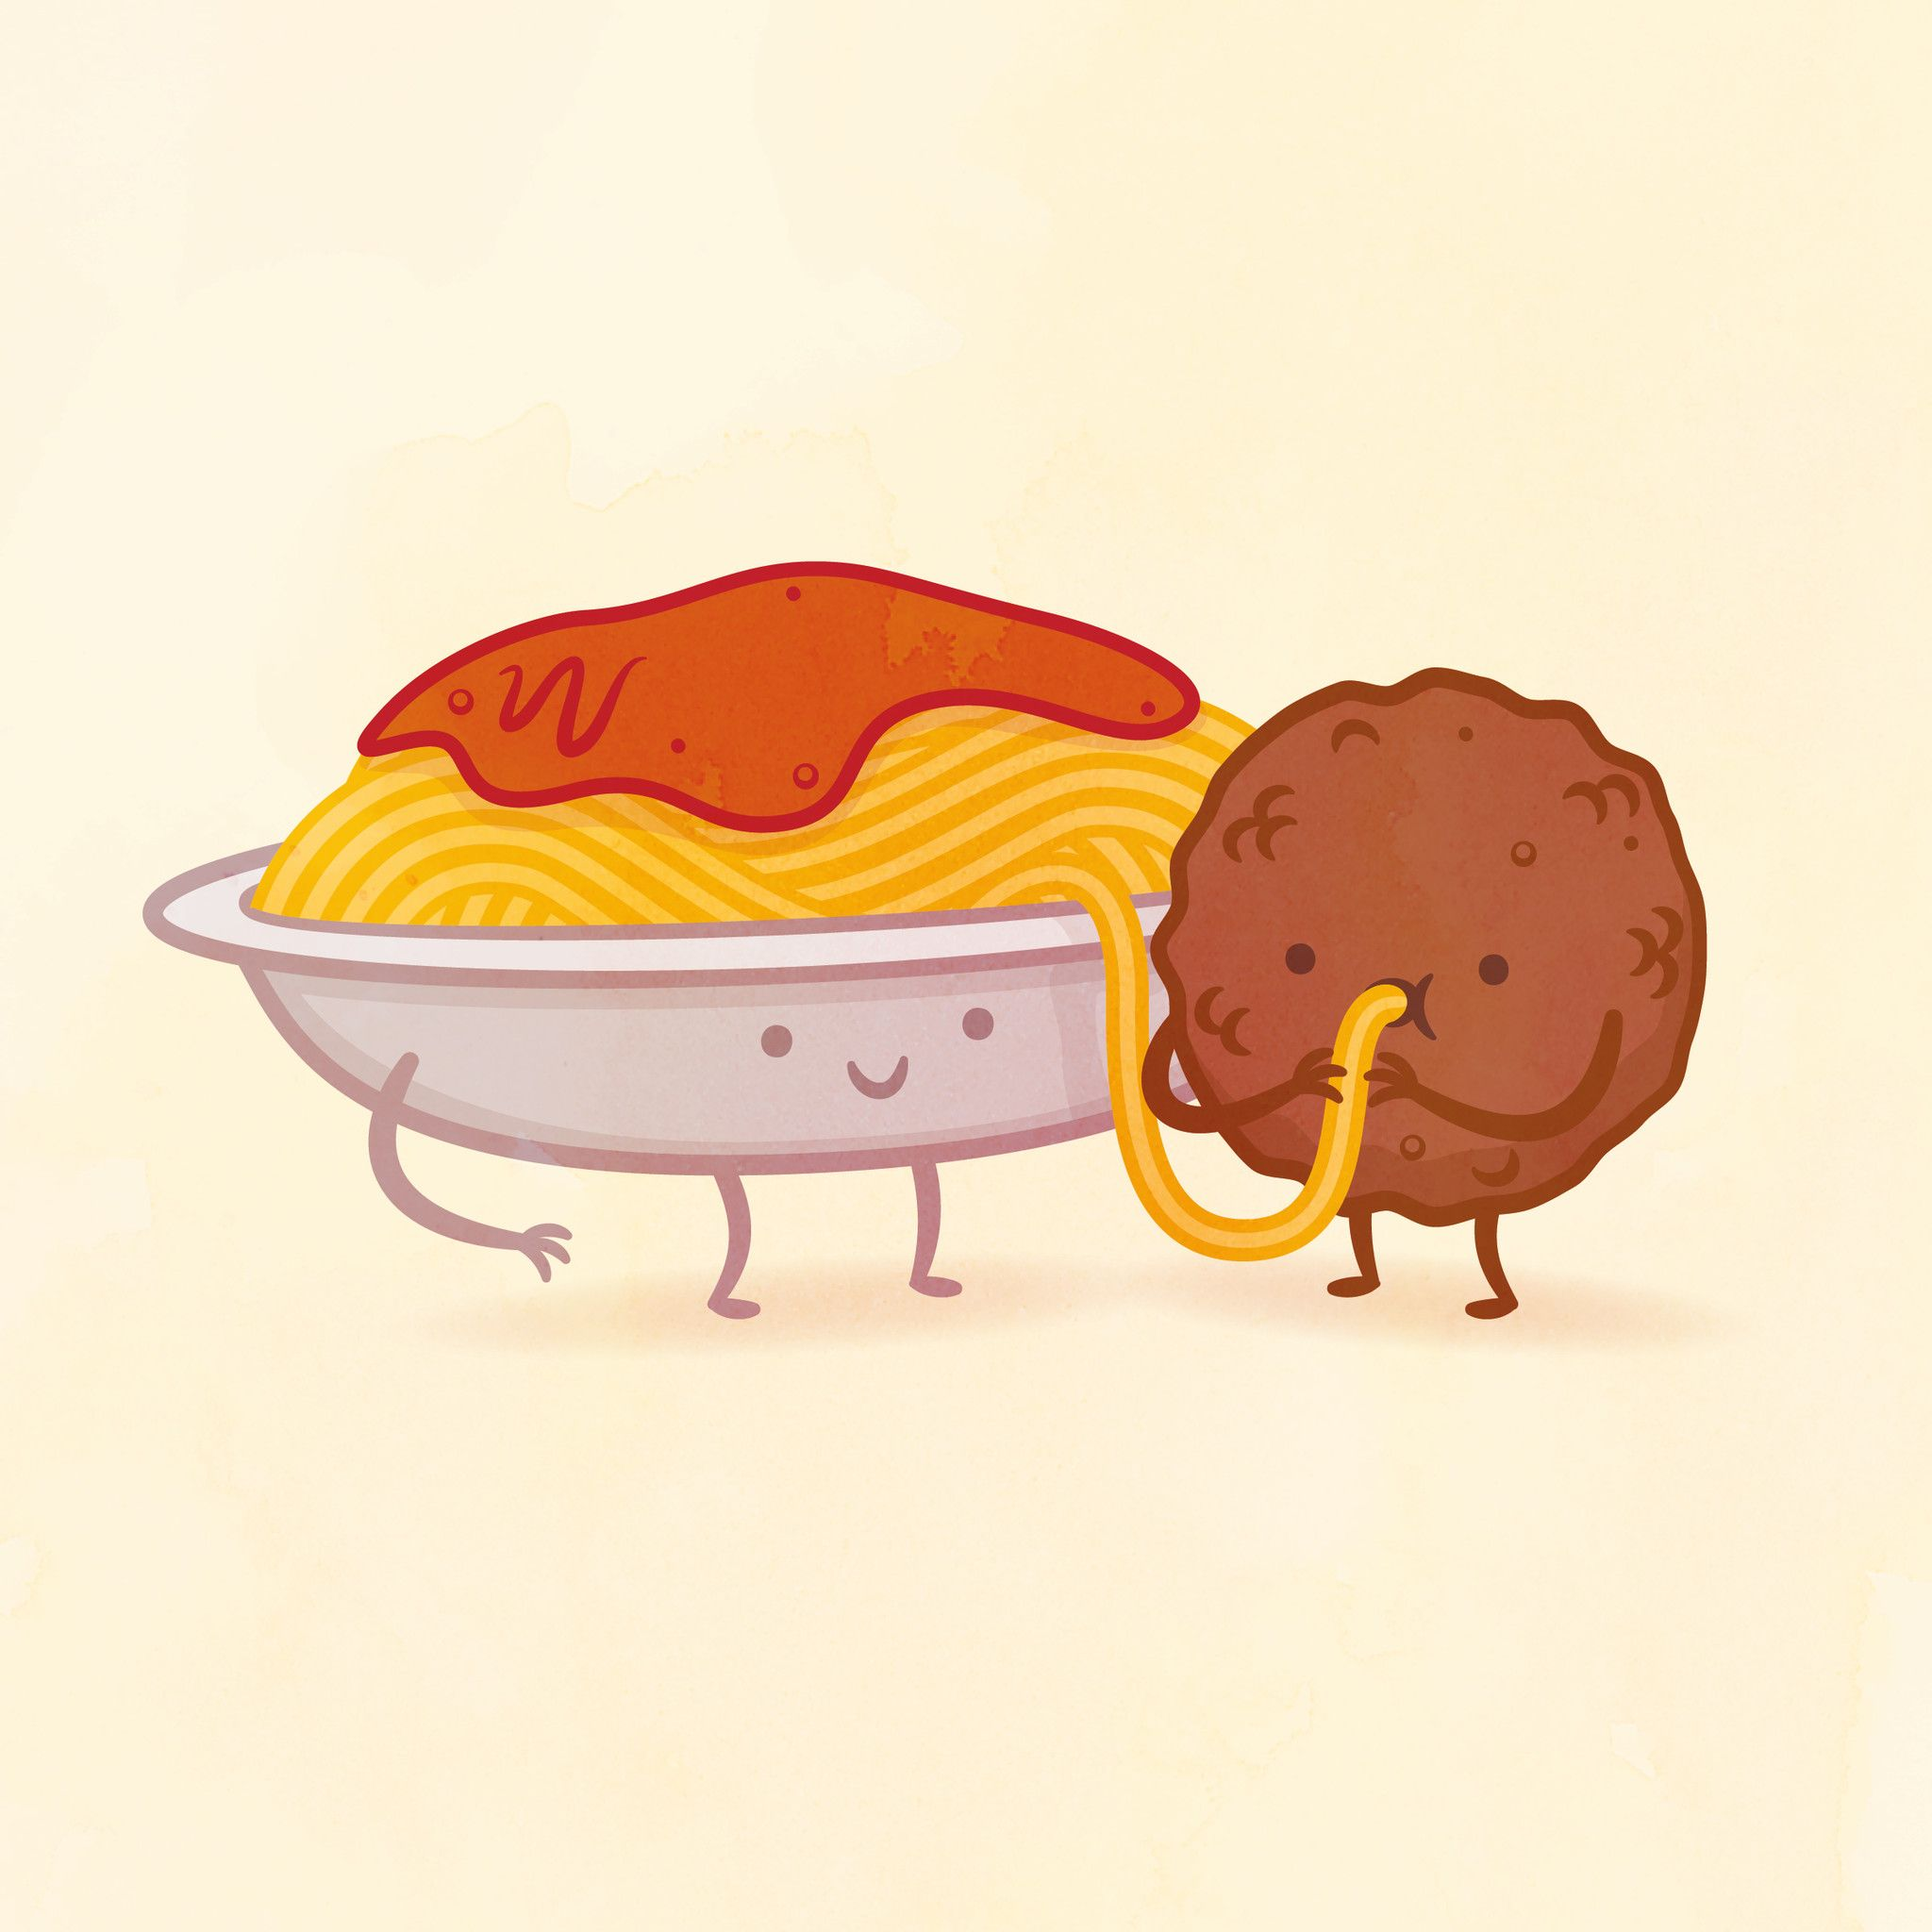 Spaghetti And Meatball By Philip Tseng Visual Displayment